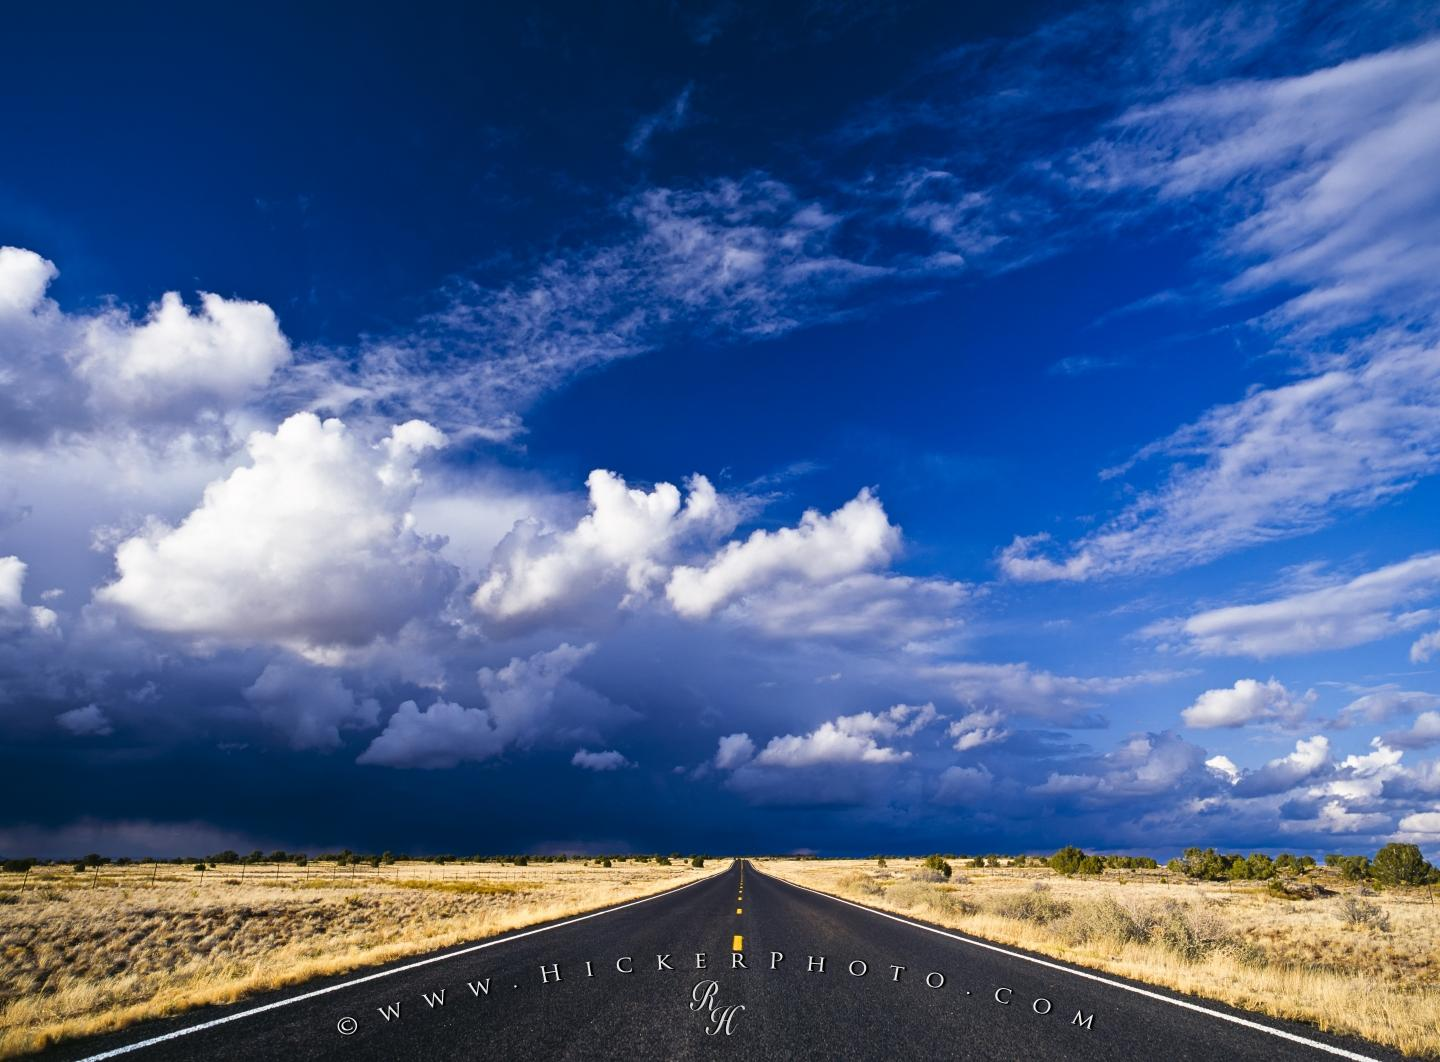 wallpaper background Endless Desert Road Storm Clouds New Mexico 1440x1062